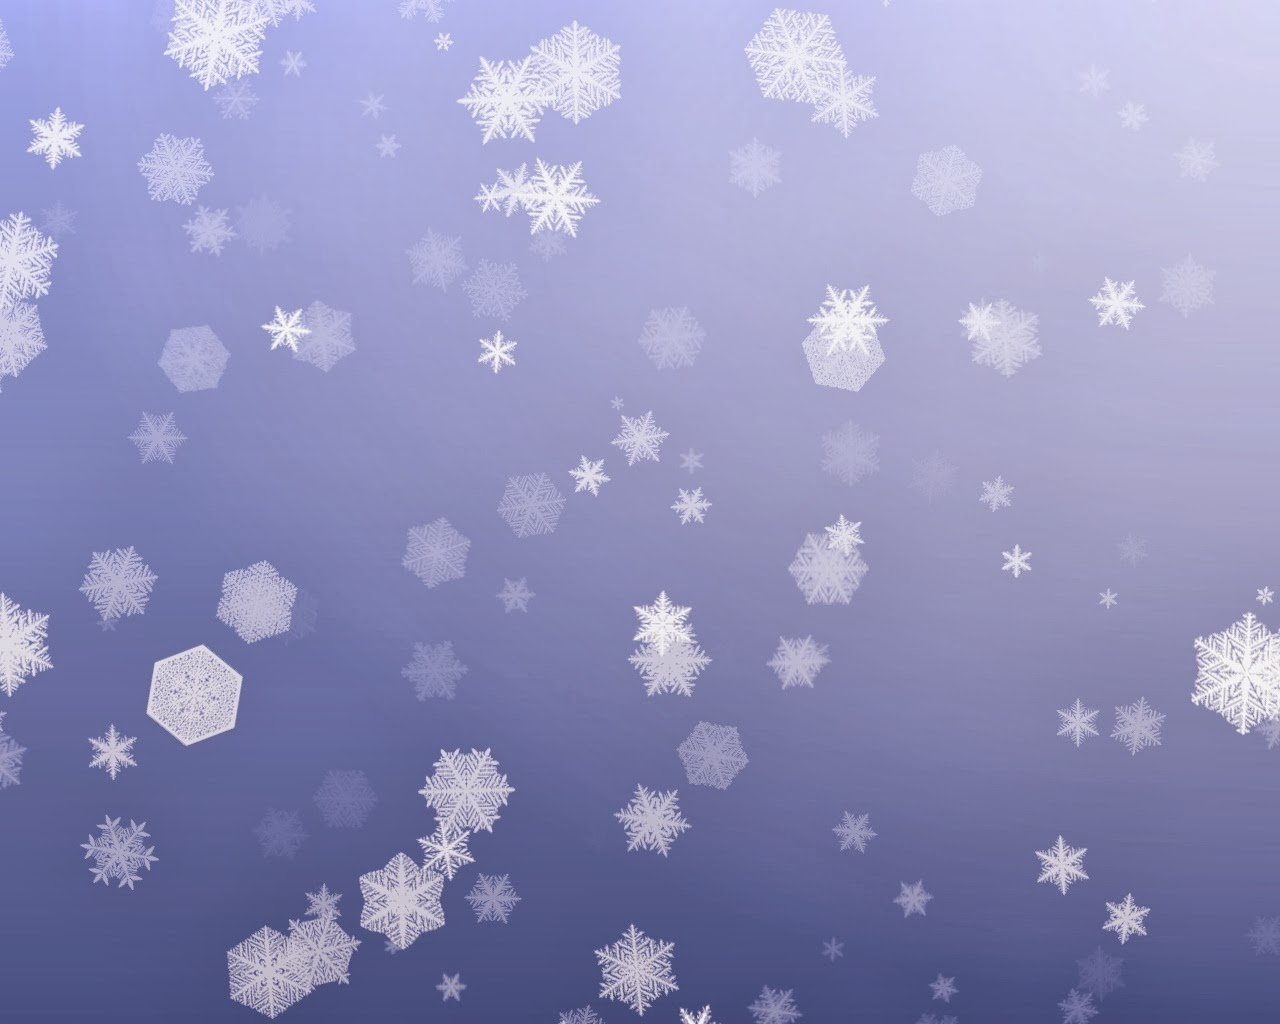 Snowflake HD Wallpapers,Pictures And Pics - HD Wallpapers Blog